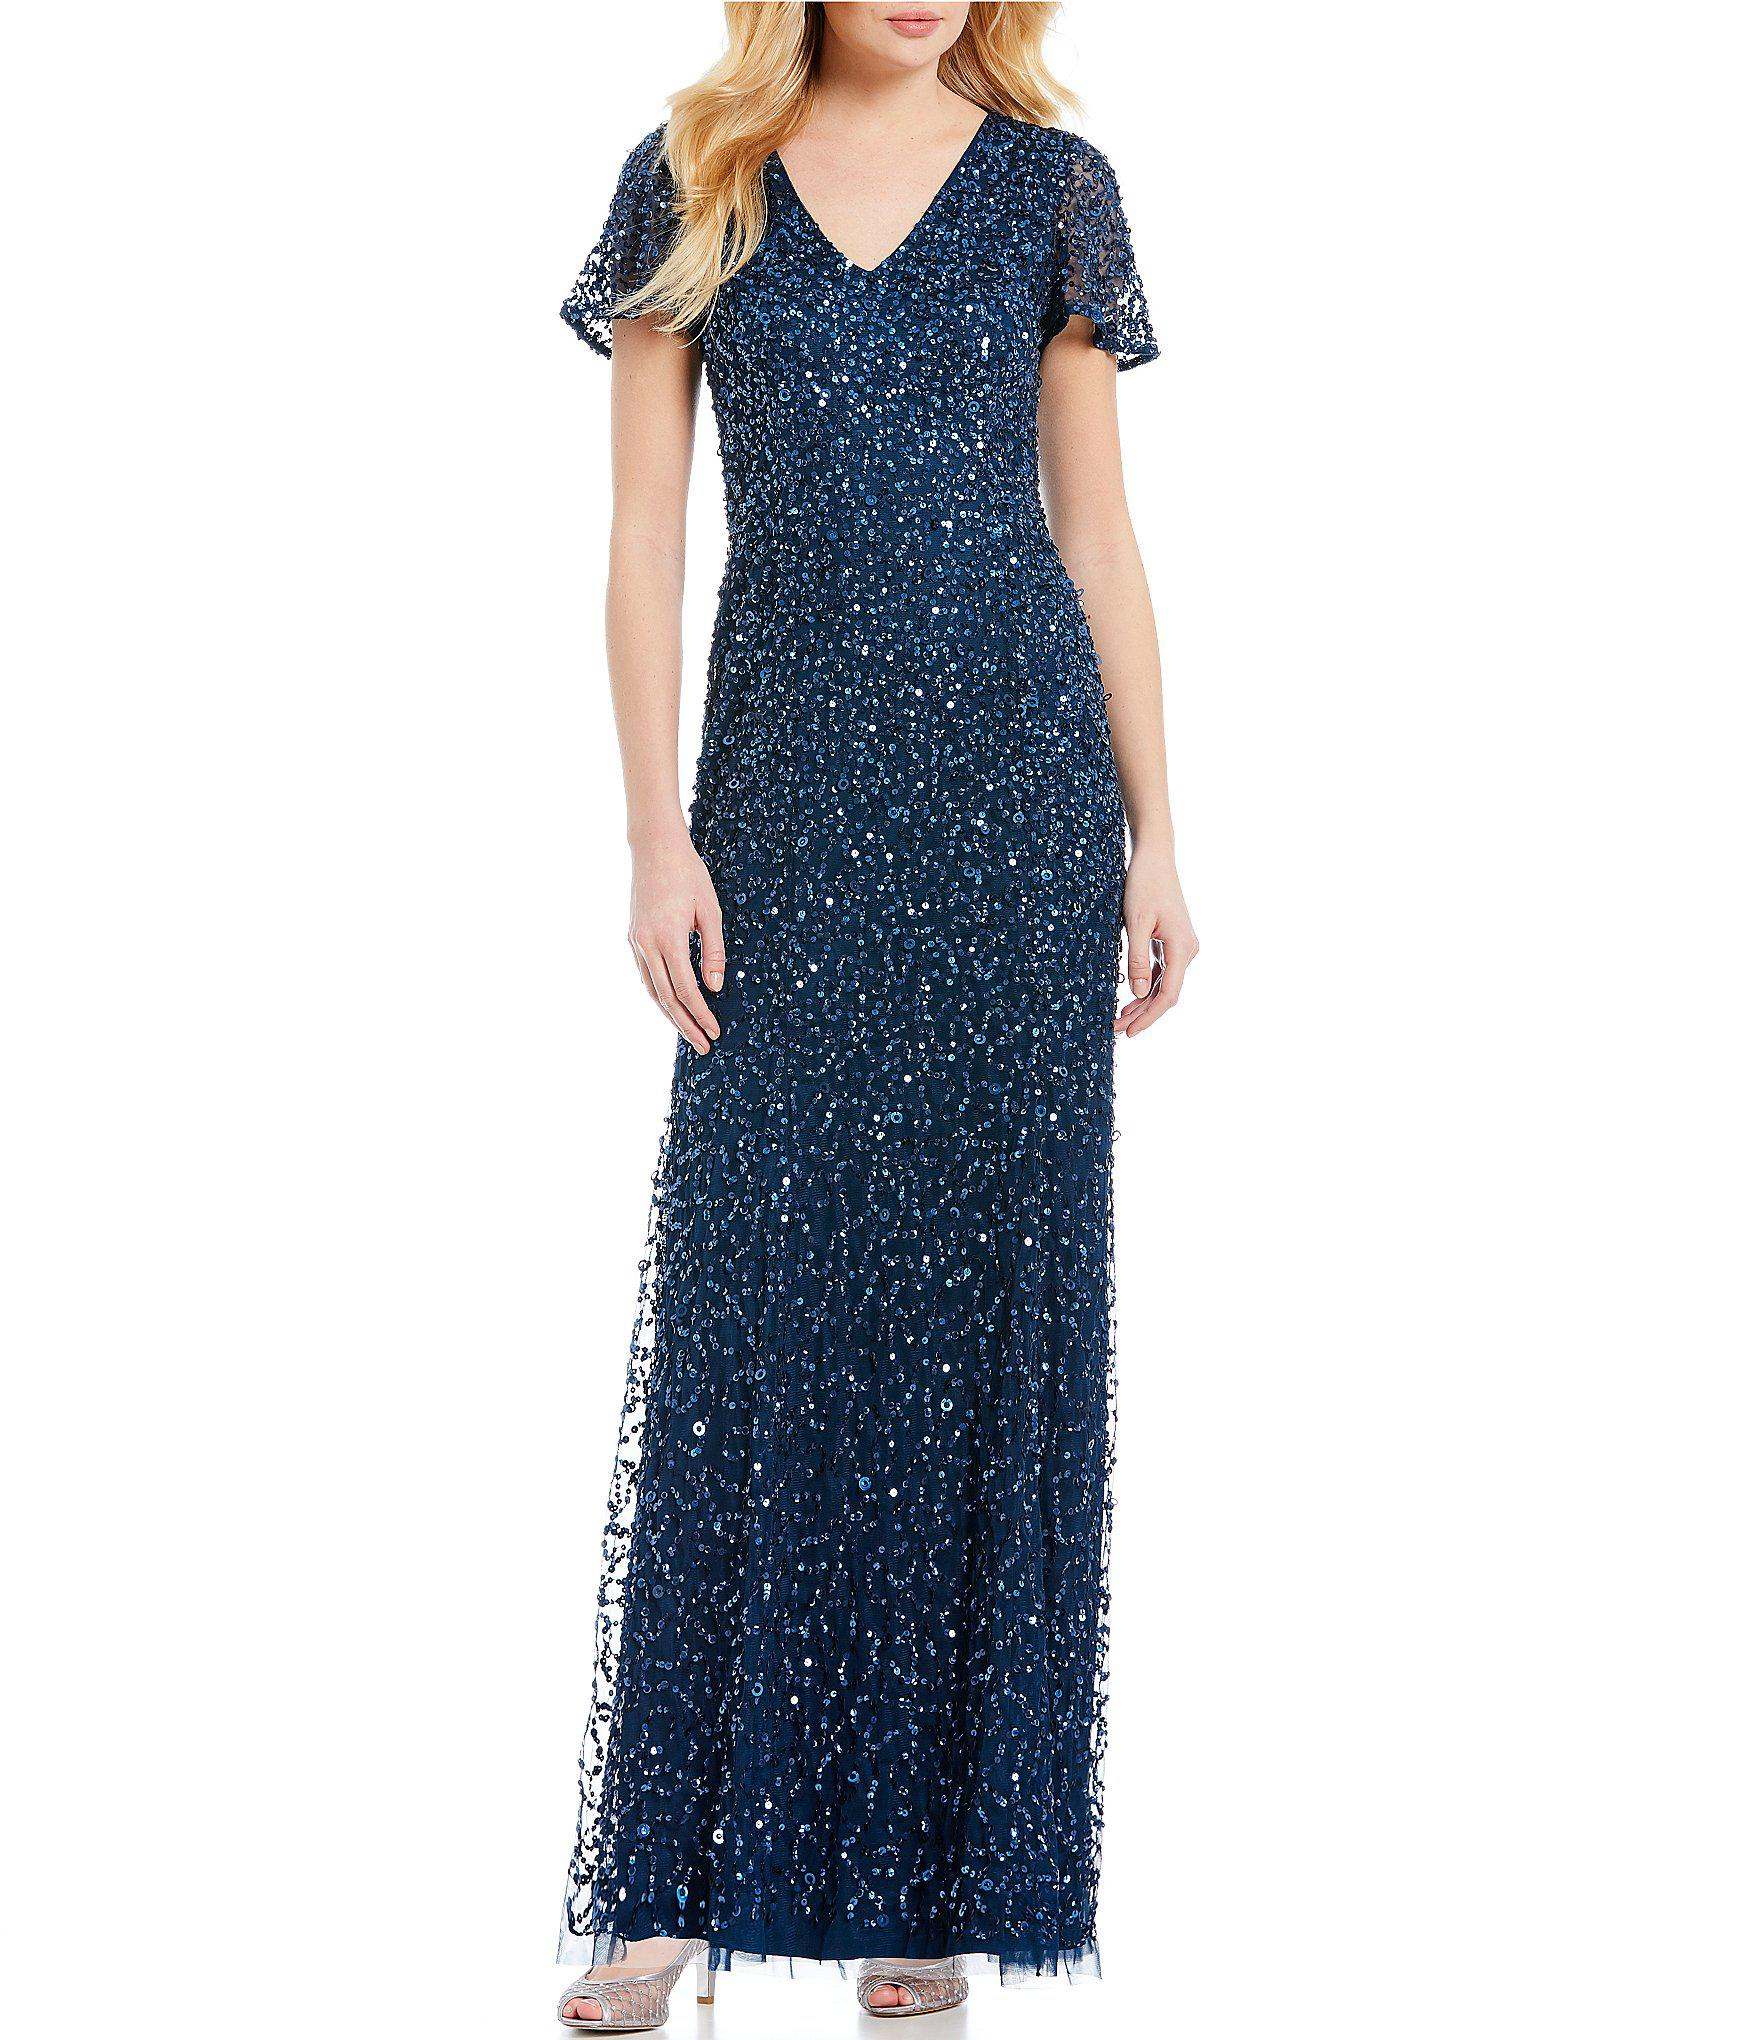 c82ba4cc Lyst - Adrianna Papell V Neck Sequin Gown in Blue